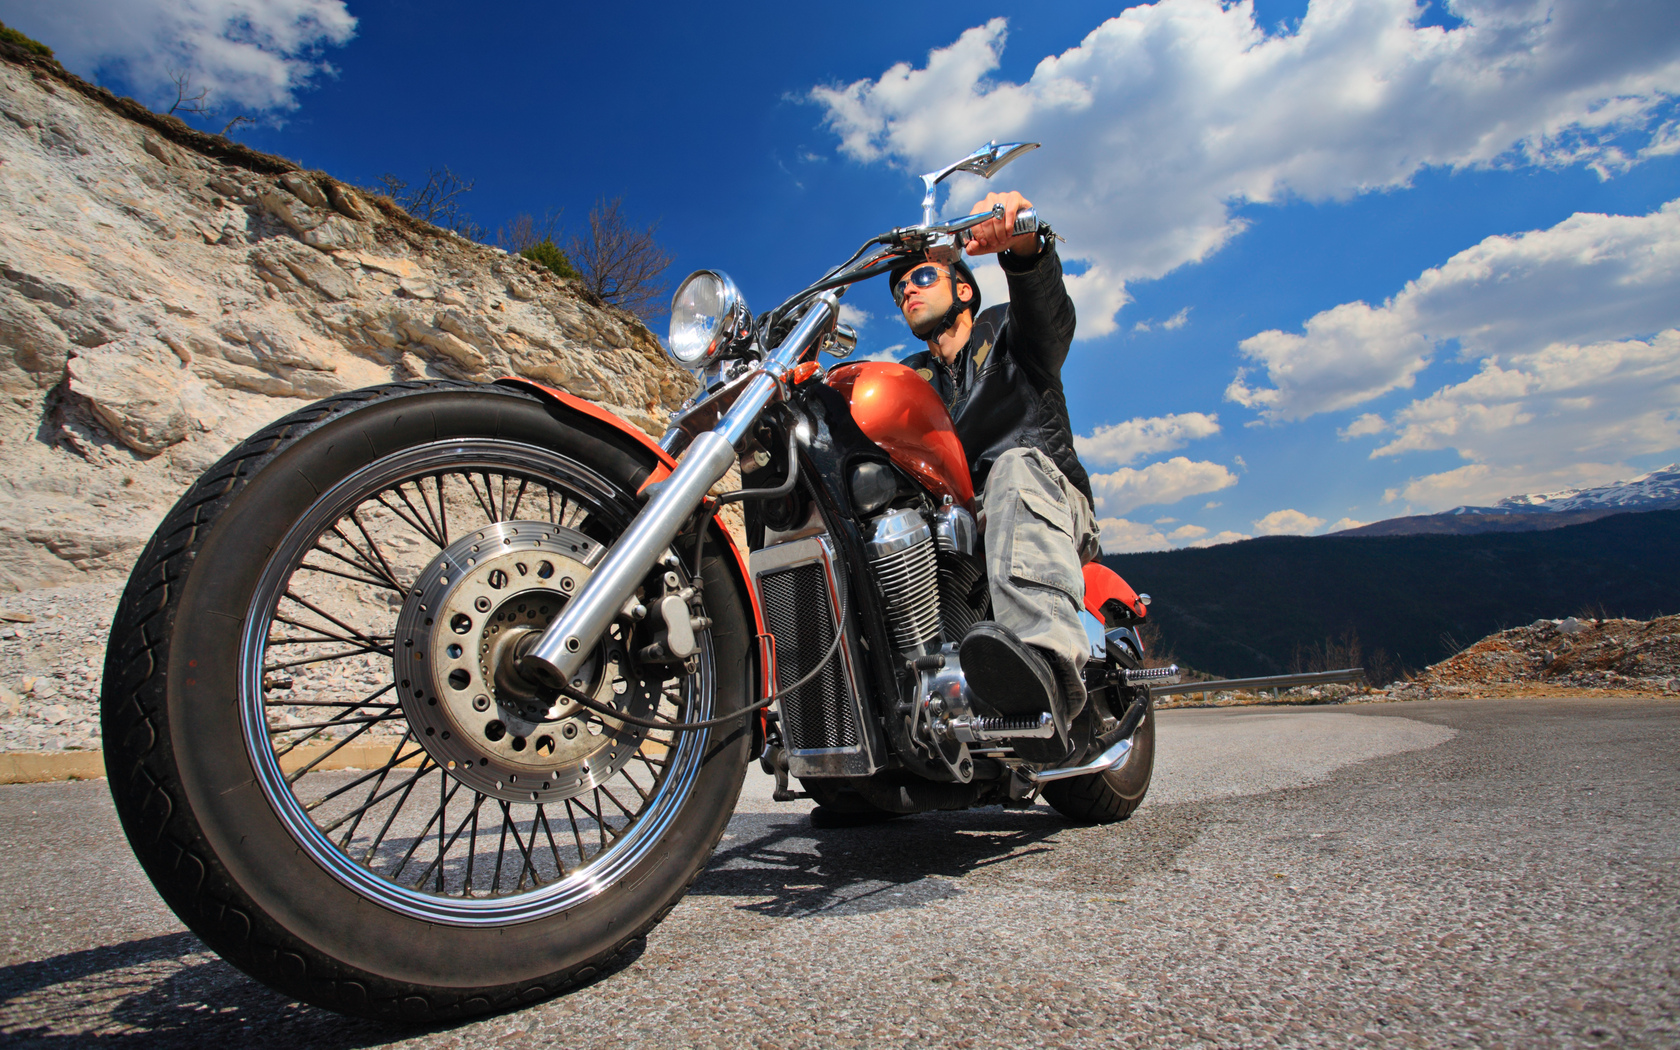 Requirements for Legally Riding a Motorcycle and Obtaining a Motorcycle License - driver-start.com